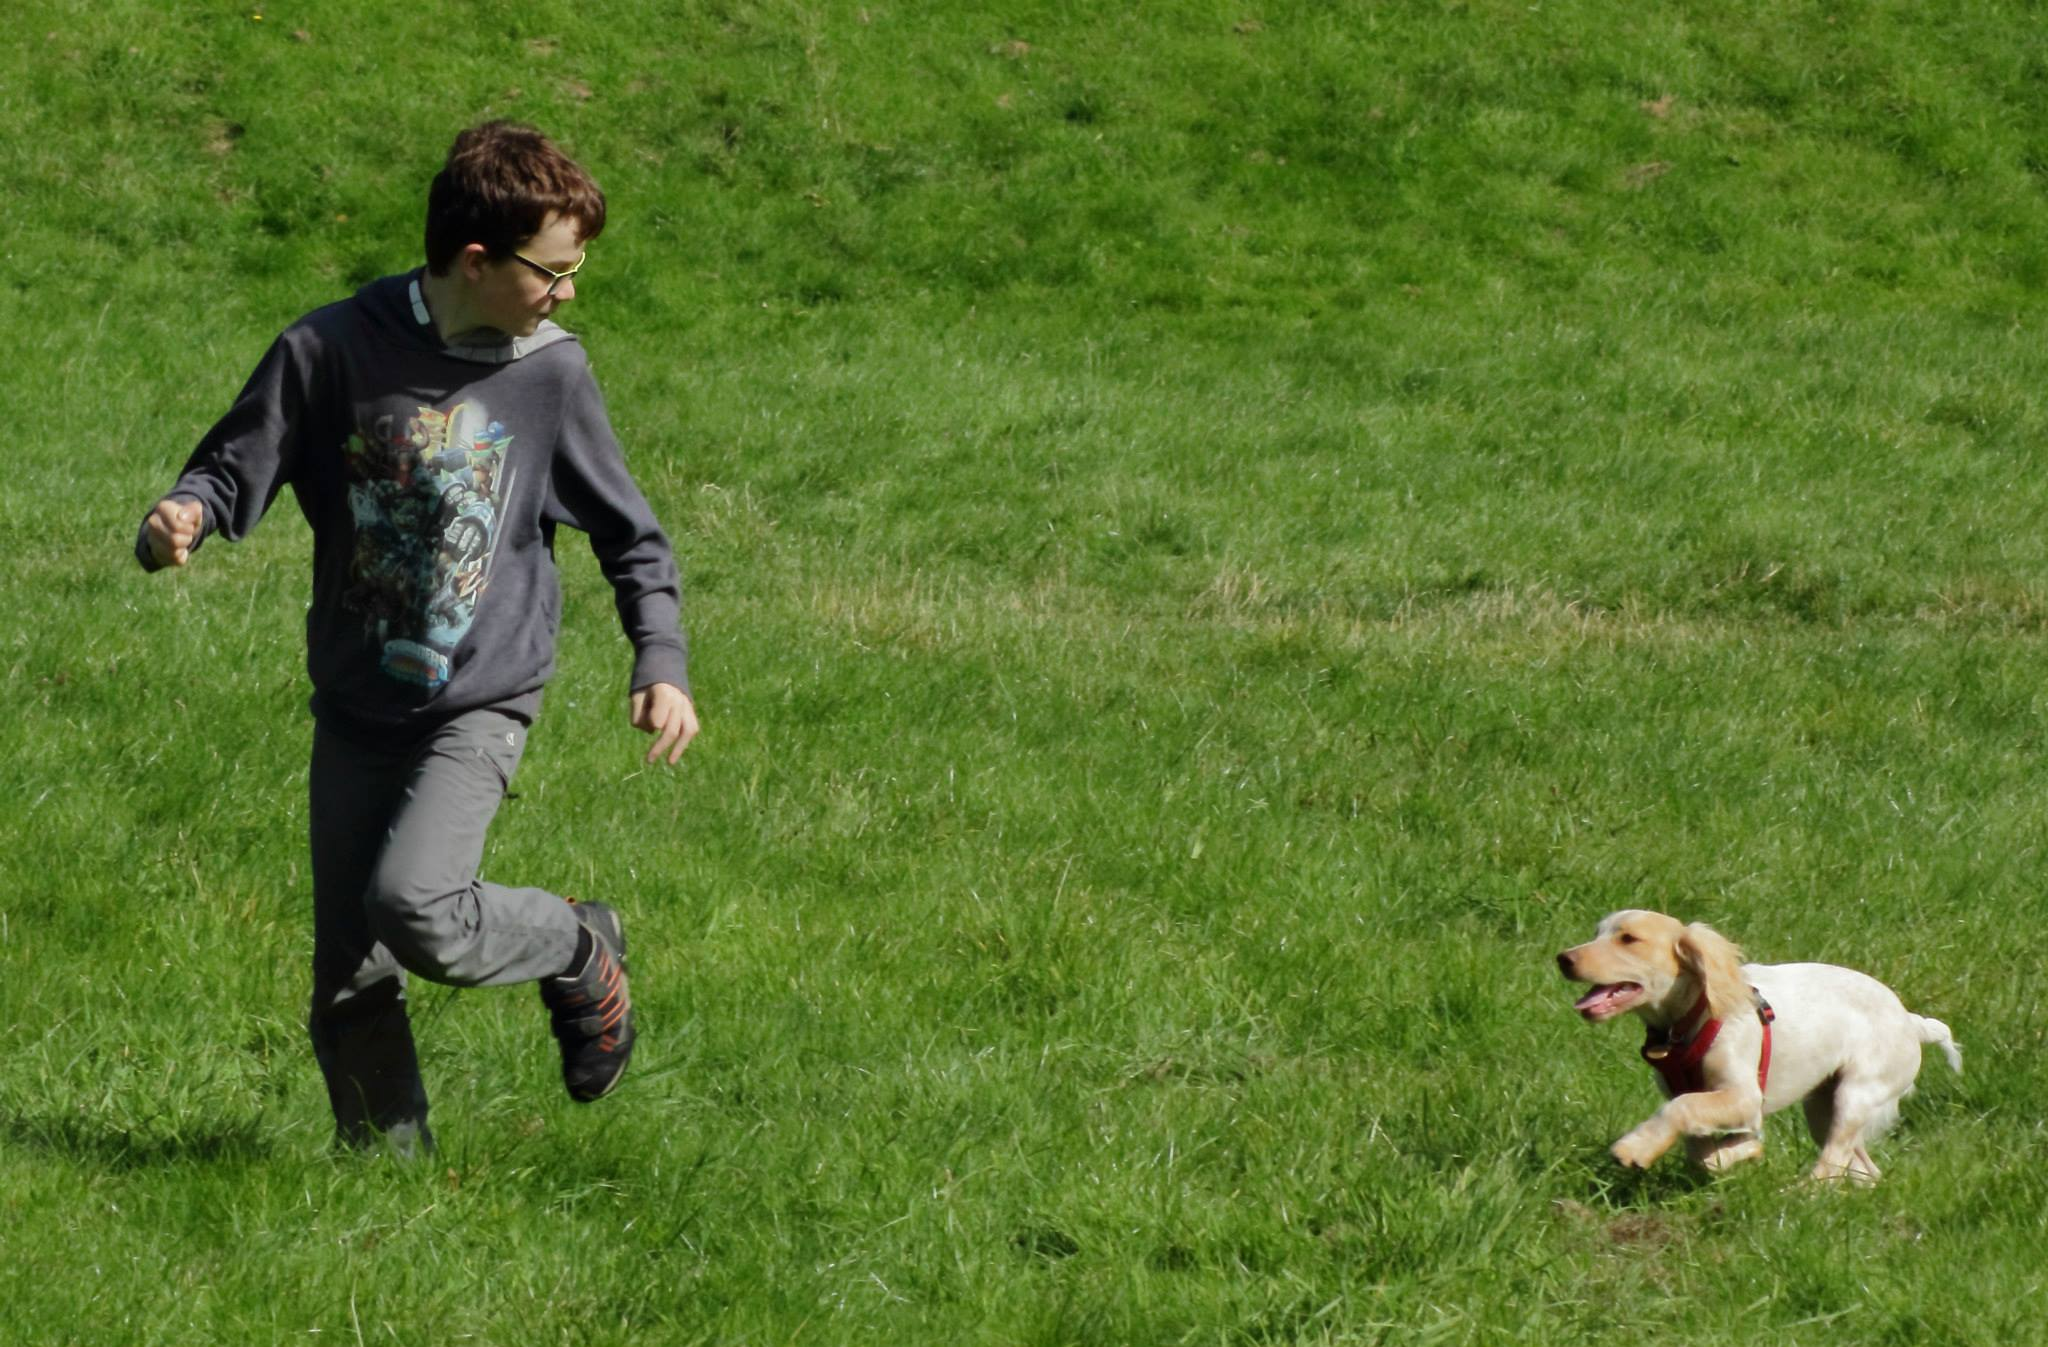 This puppy is loving chasing after his young owner   FREE GUIDE   Dog training, new puppy, puppy training, dog recall training   #newpuppy, #dogtraining, #newrescuedog, #puppytraining, #dogbehavior   www.brilliantfamilydog.com